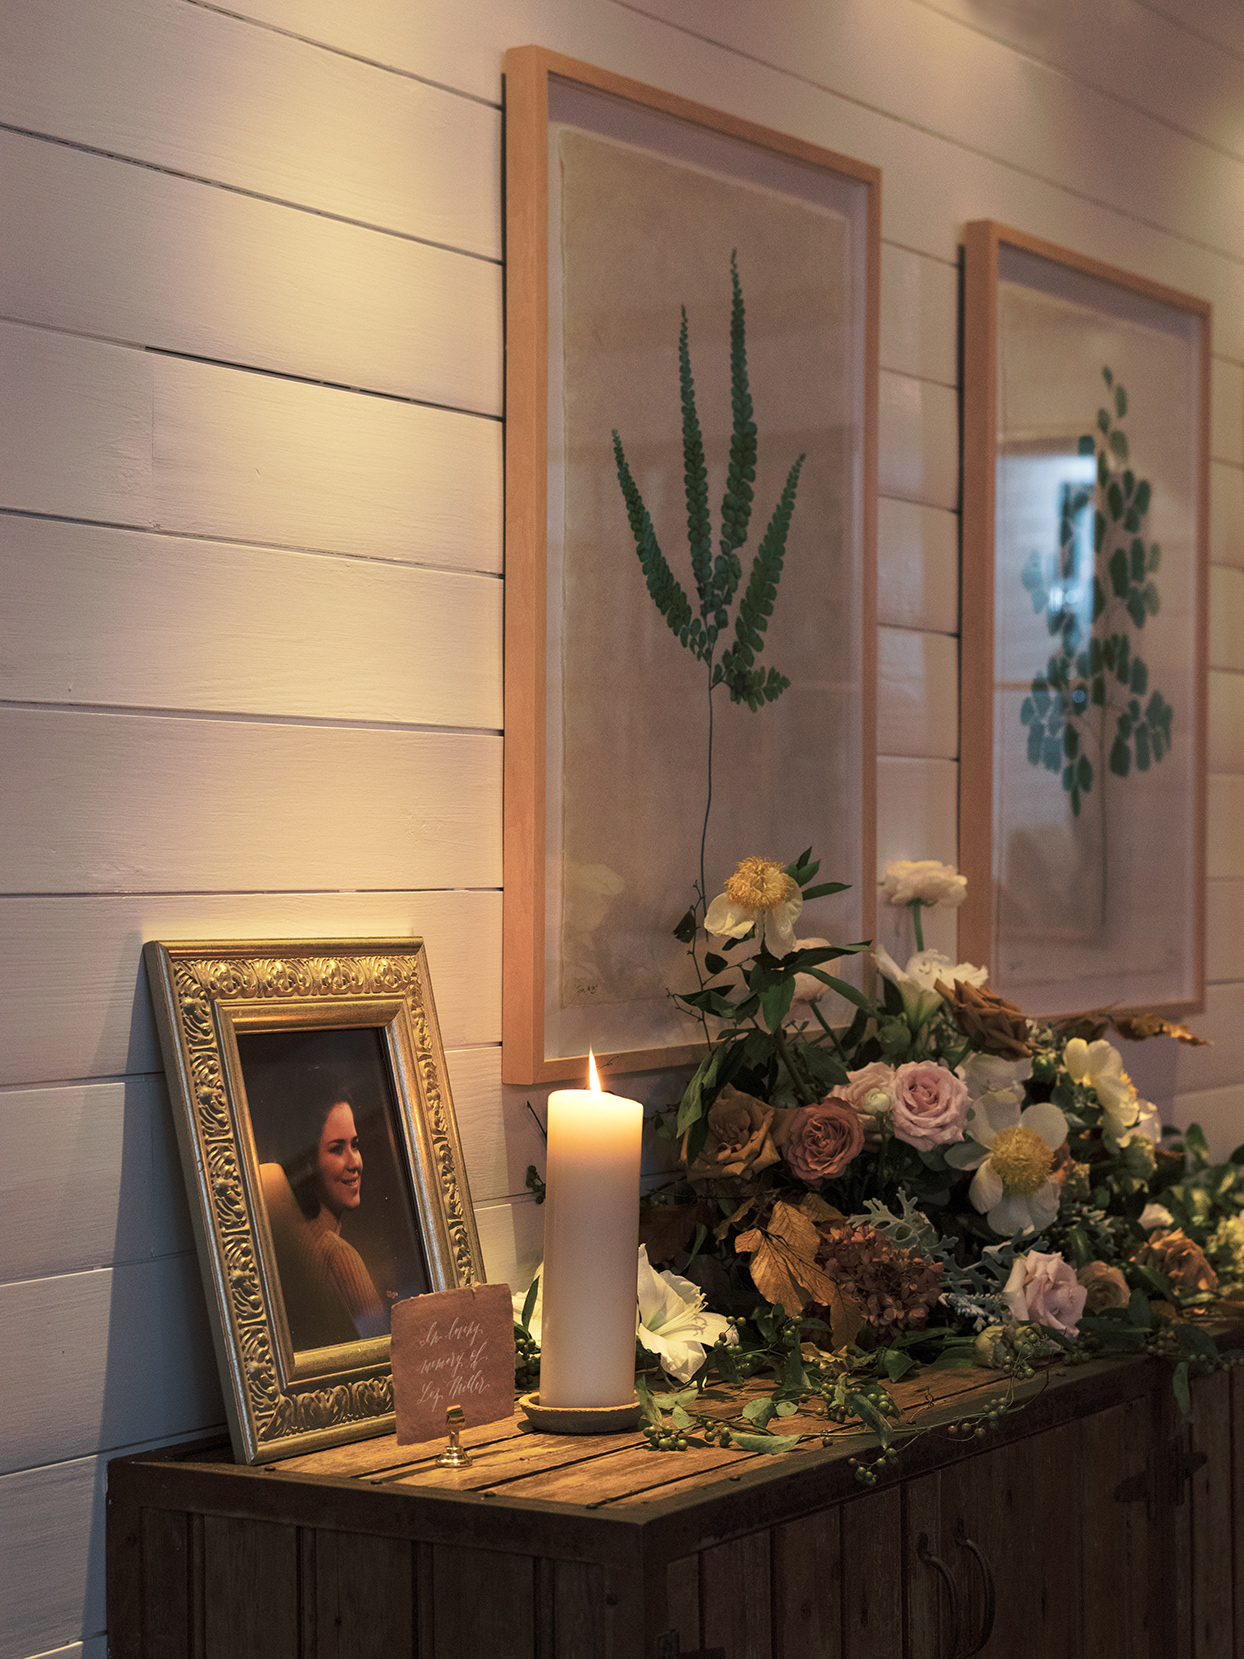 elizabeth scott wedding memorial picture and candle on table